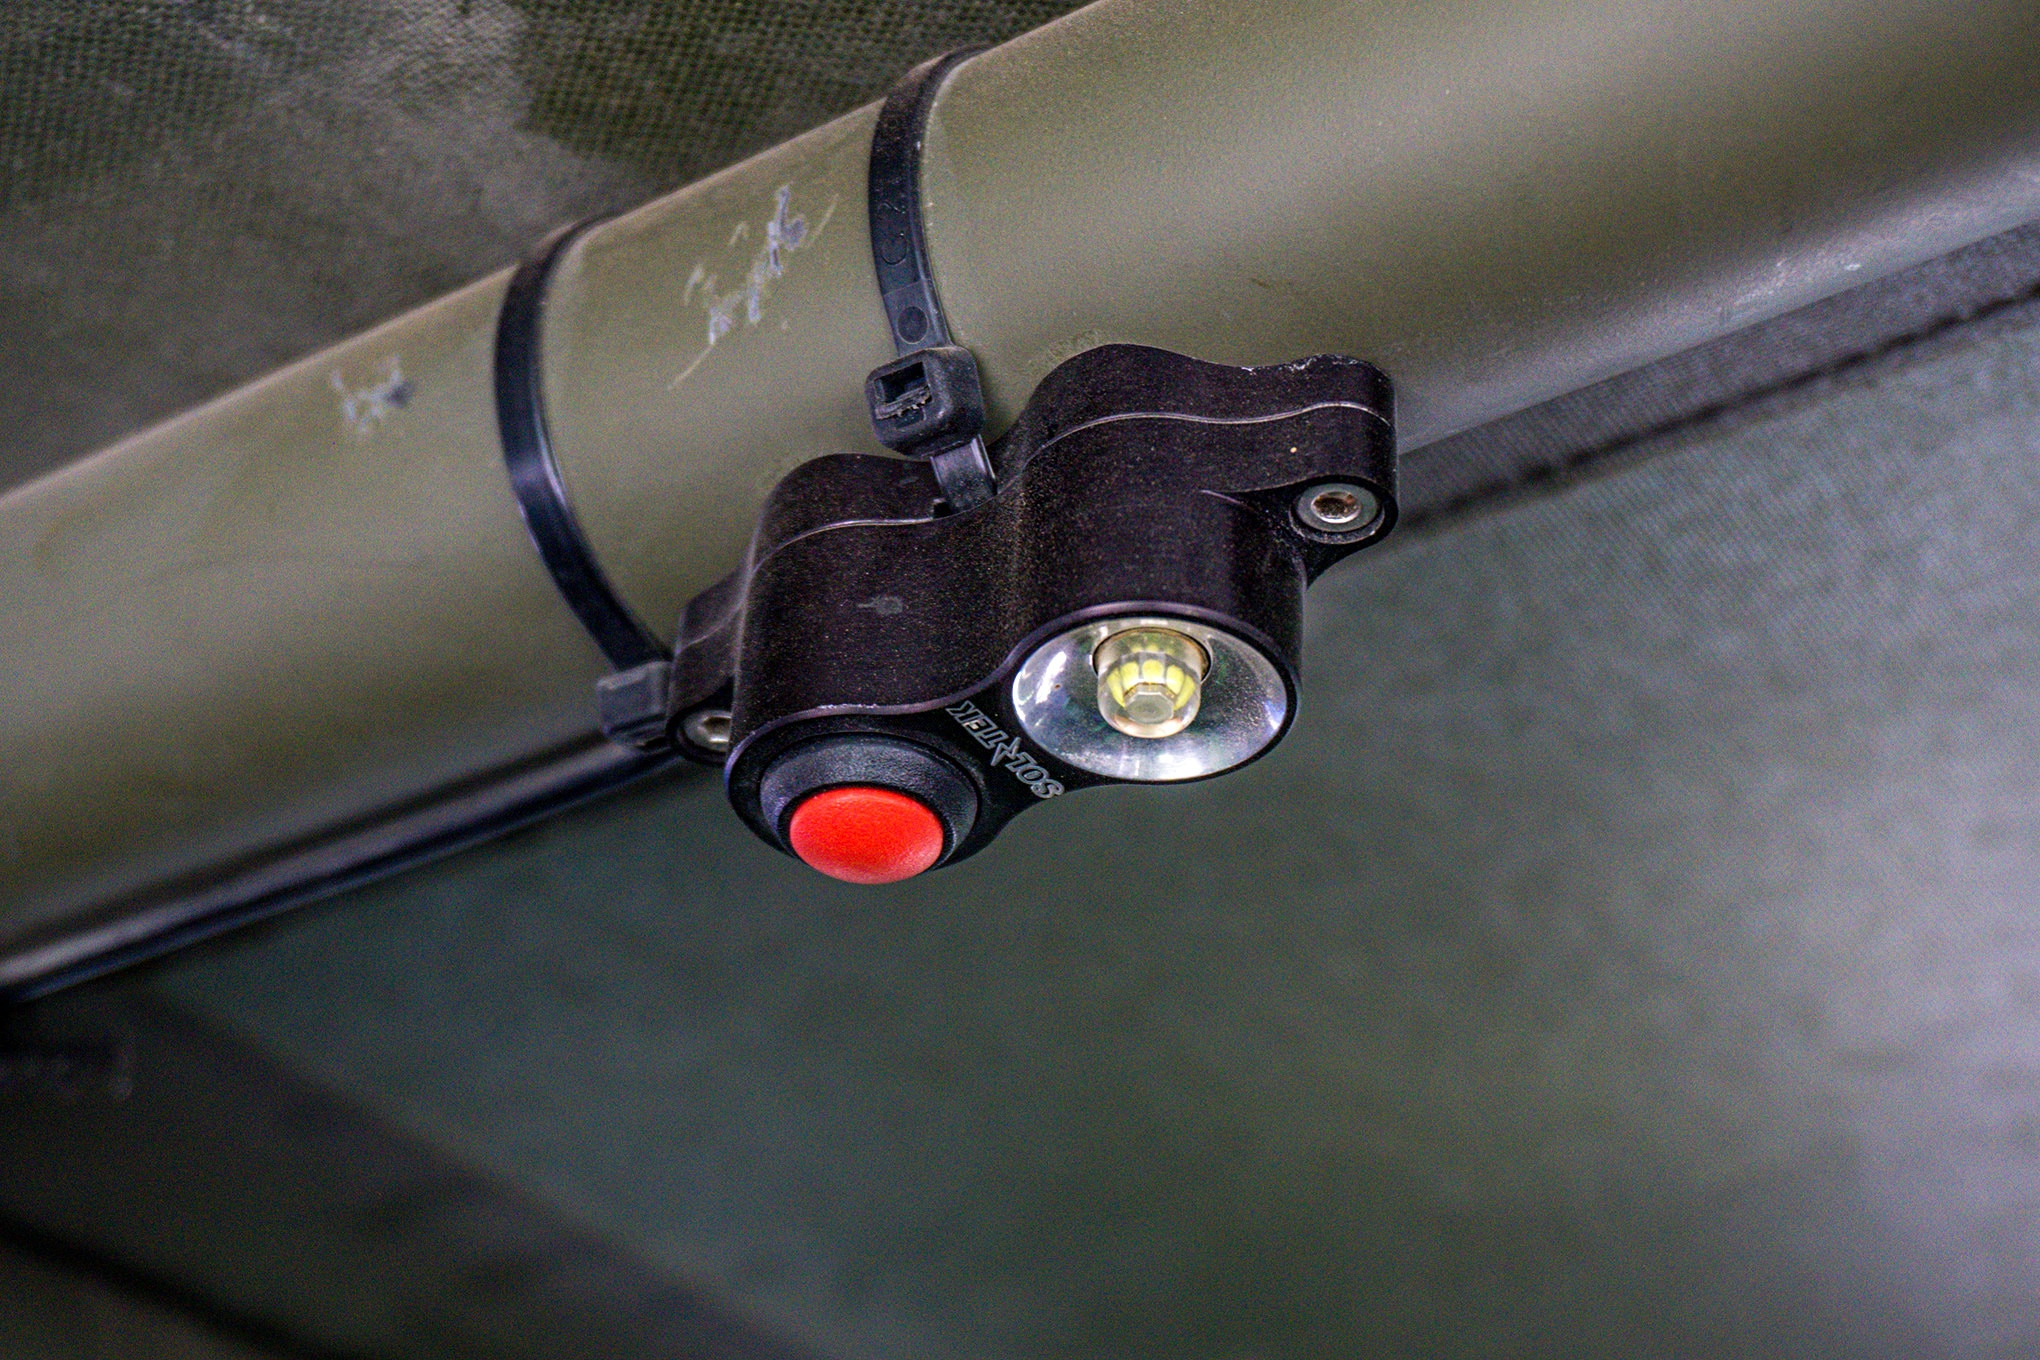 There is nothing worse that rummaging through your rig looking for something in the middle of the night when you are dirty and tired and just want to set up camp and get to sleep. Baja Designs makes these cool little LED dome lights that spread a wide light pattern without blinding you.